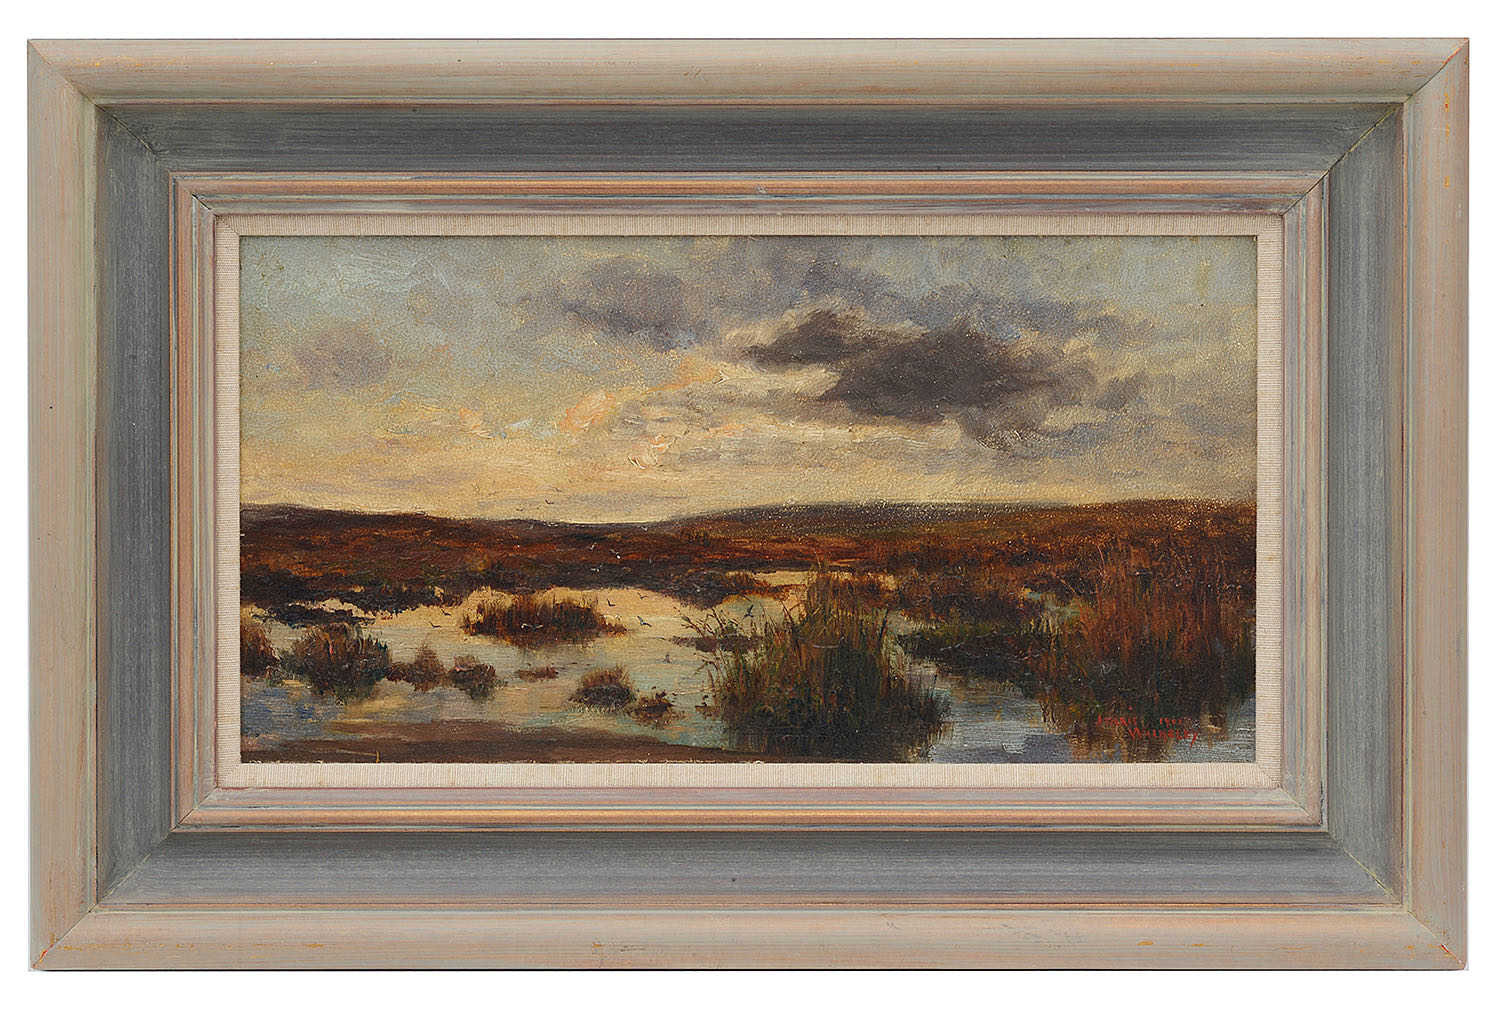 Lot 60 - James Ulric Walmsley (Brit., 1860-1954) 'Evening on the moors, Robin Hood's Bay', oil on board